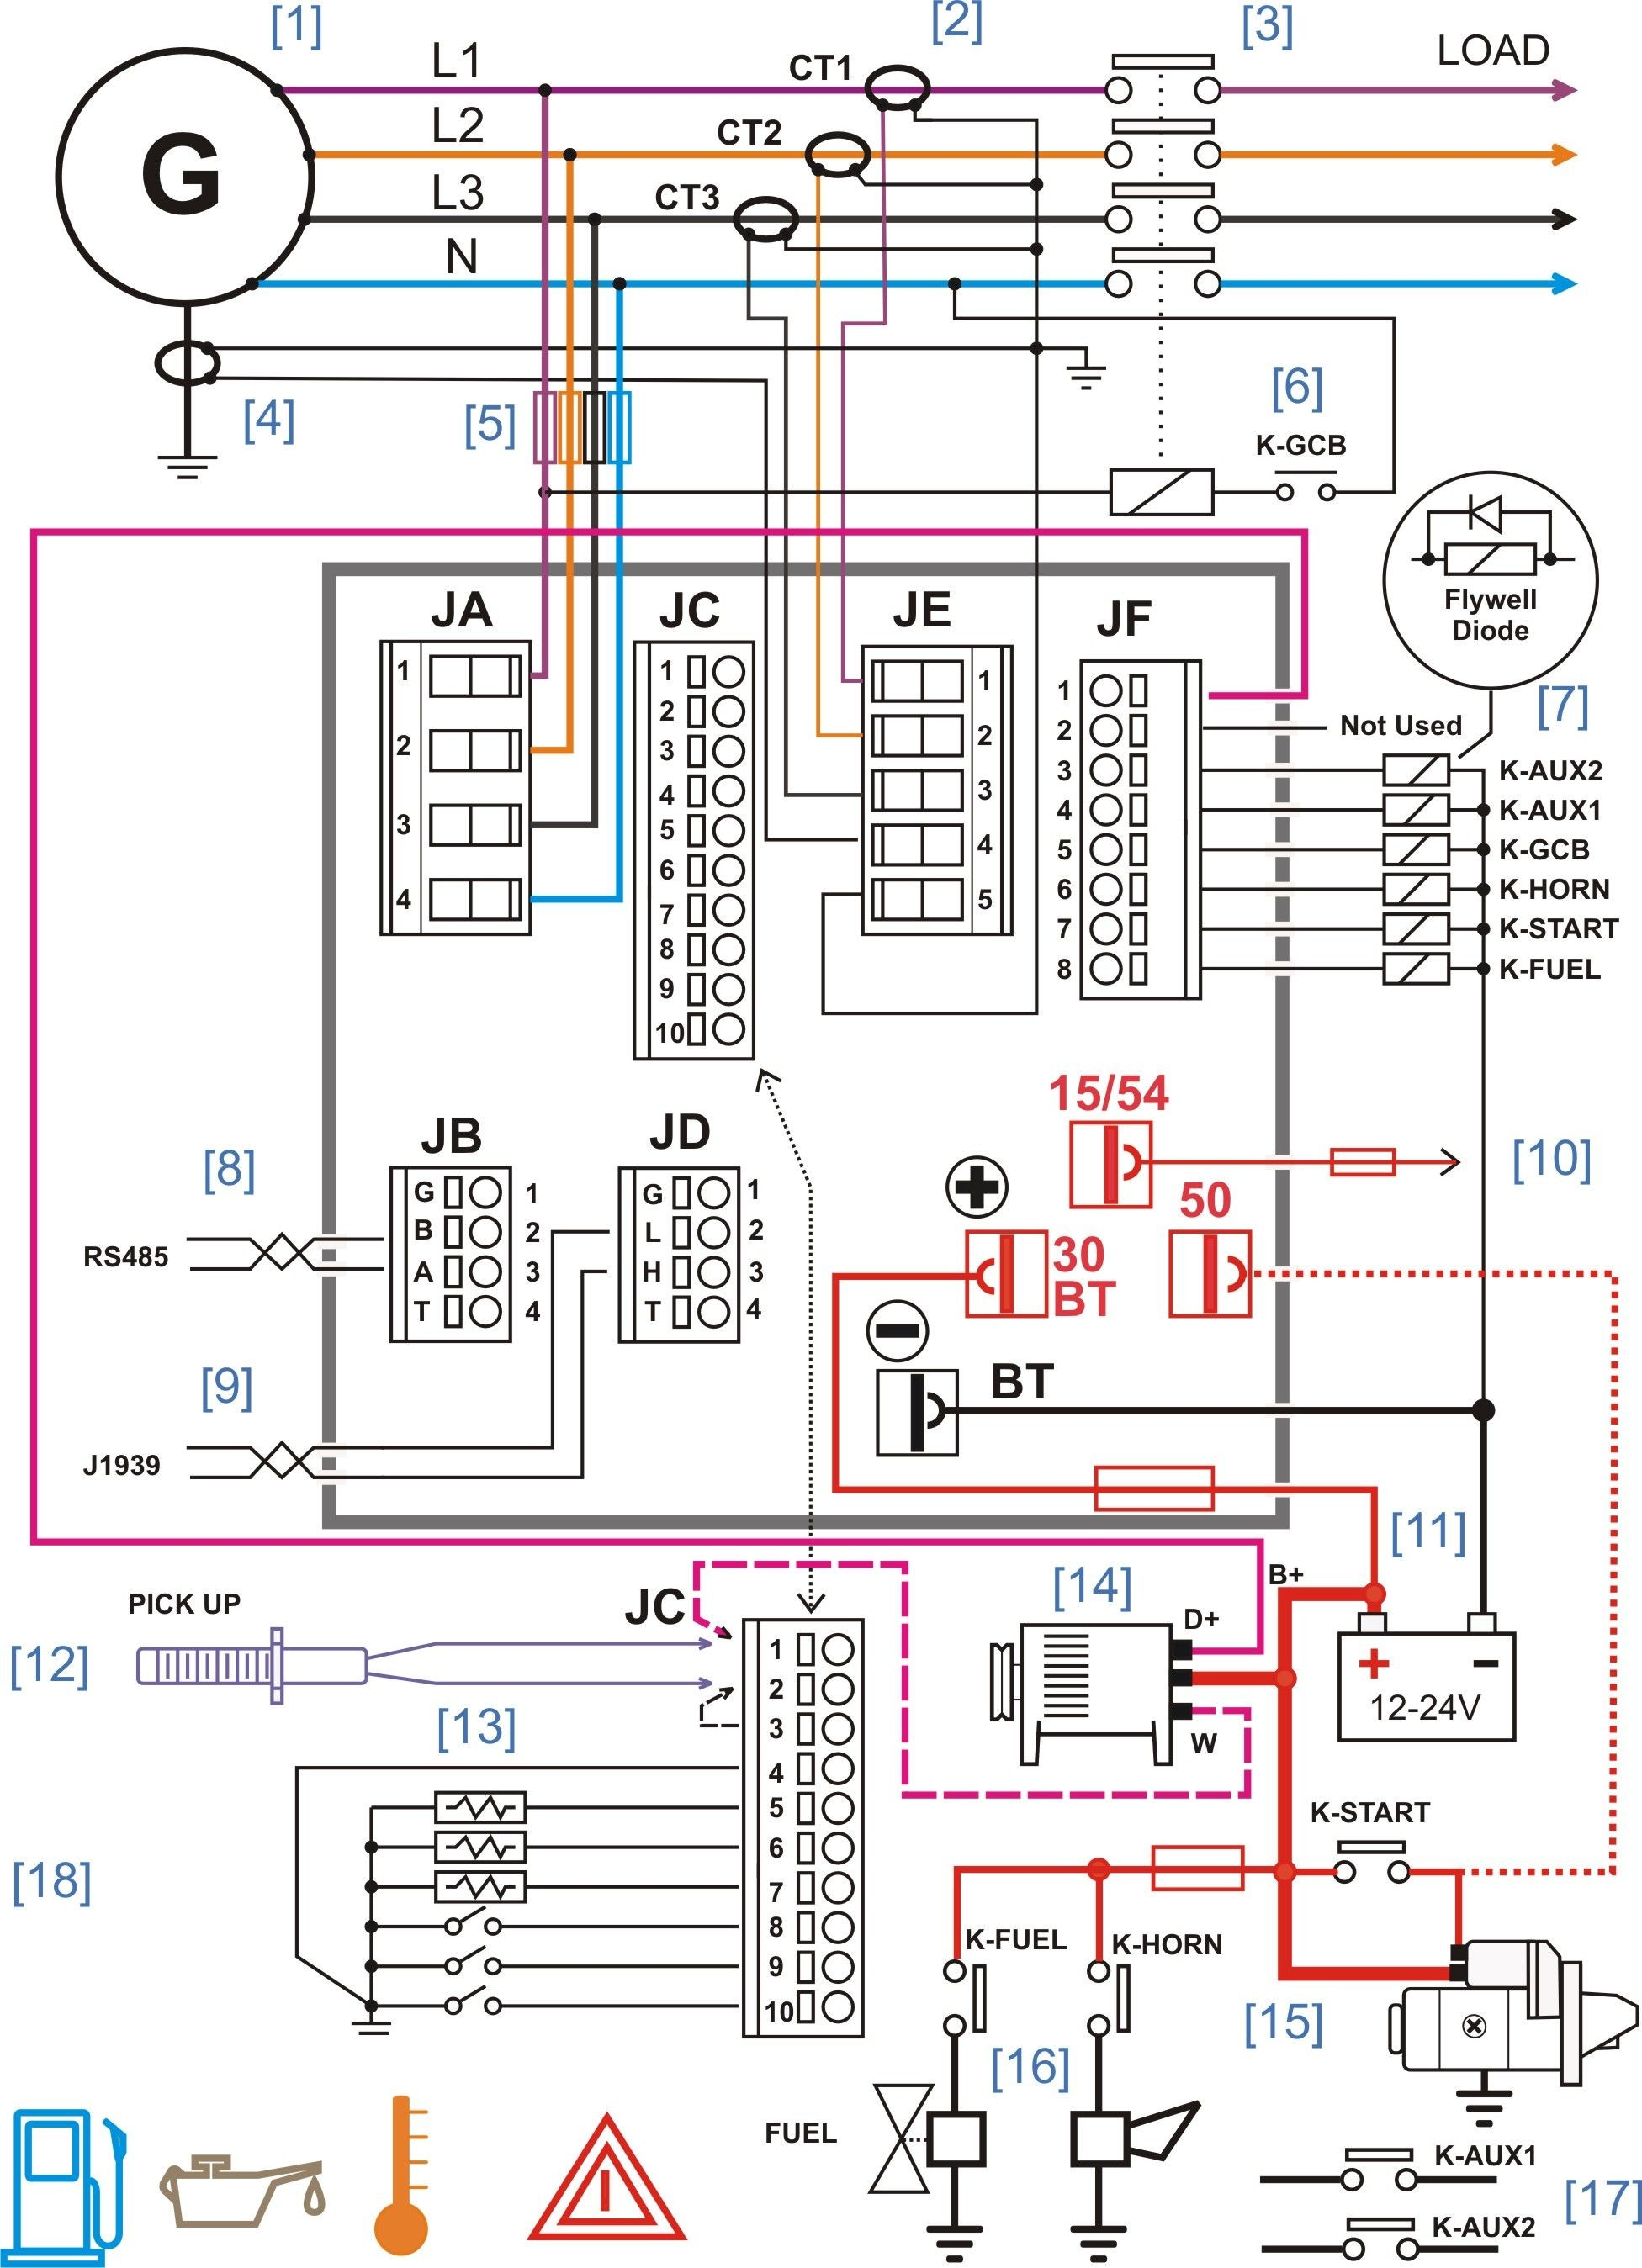 generator control panel wiring diagram Download-Wiring Diagram Maker Free Simple Diesel Generator Control Panel Wiring Diagram 18-o